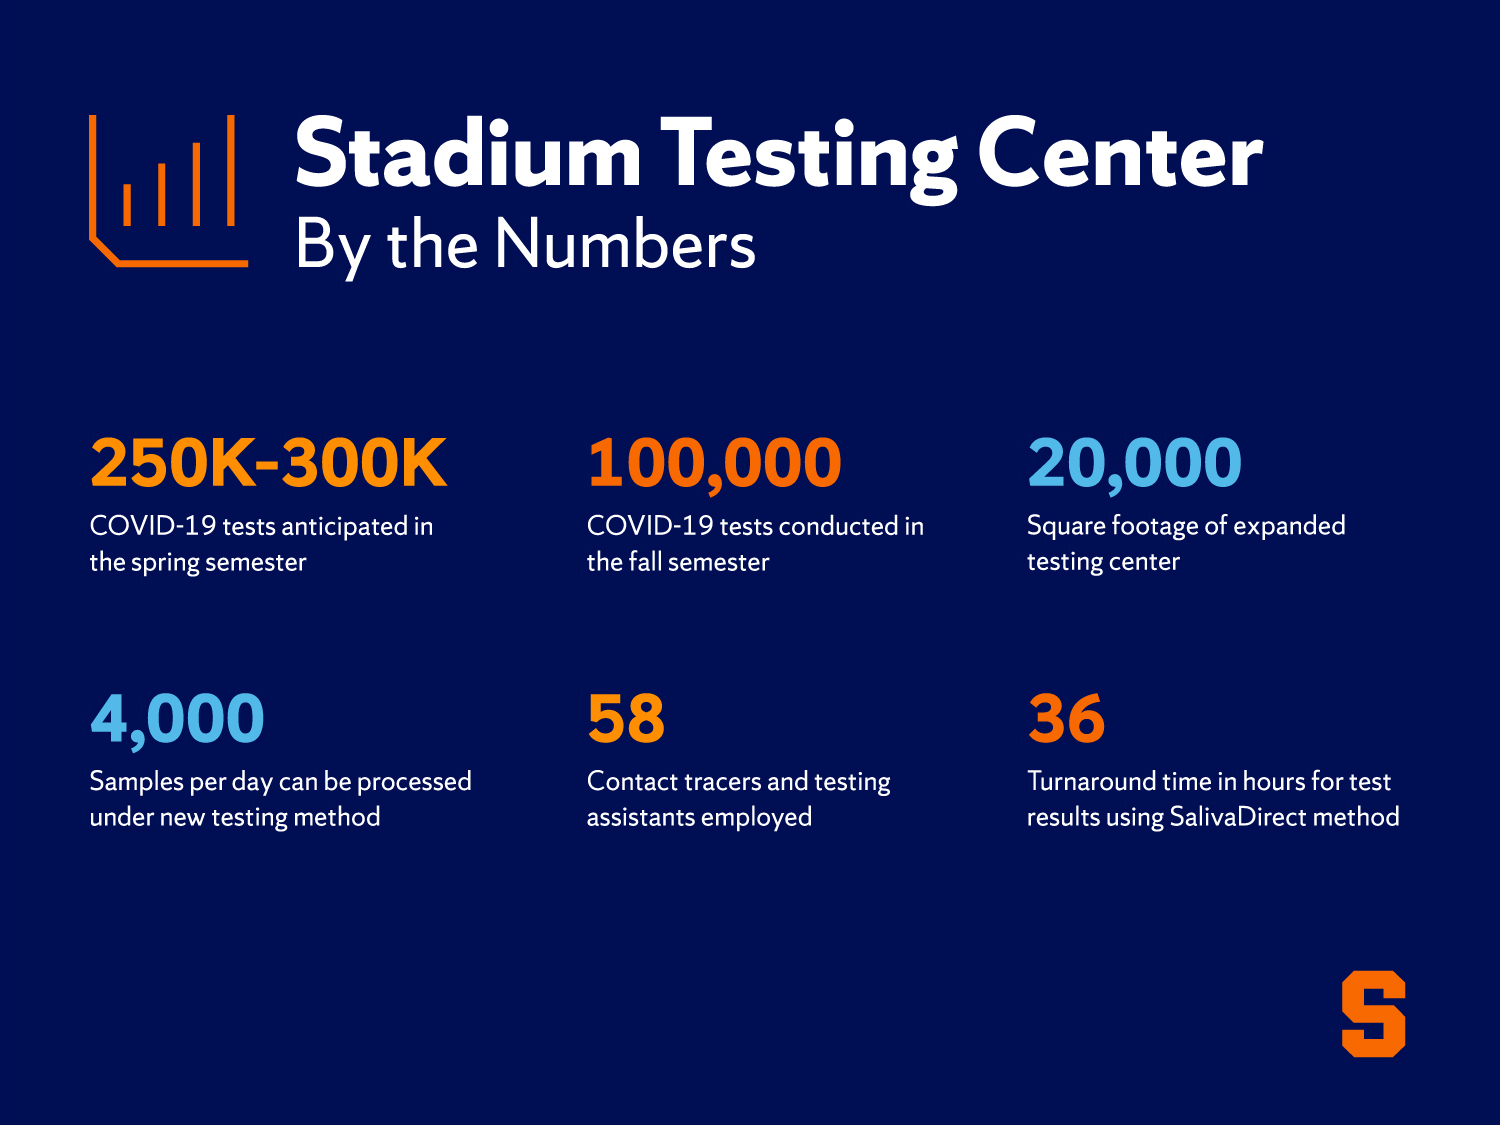 Stadium Testing Center By the Numbers: 250k-300k COVID-19 tests anticipated in the spring semester; 100,000 COVID-19 tests conducted in the fall semester; 20,000 square footage of expanded testing center; 4,000 samples per day can be processed under new testing method; 58 contact tracers and testing assistants employed; 36 turnaround time in hours for test results using SalivaDirect method